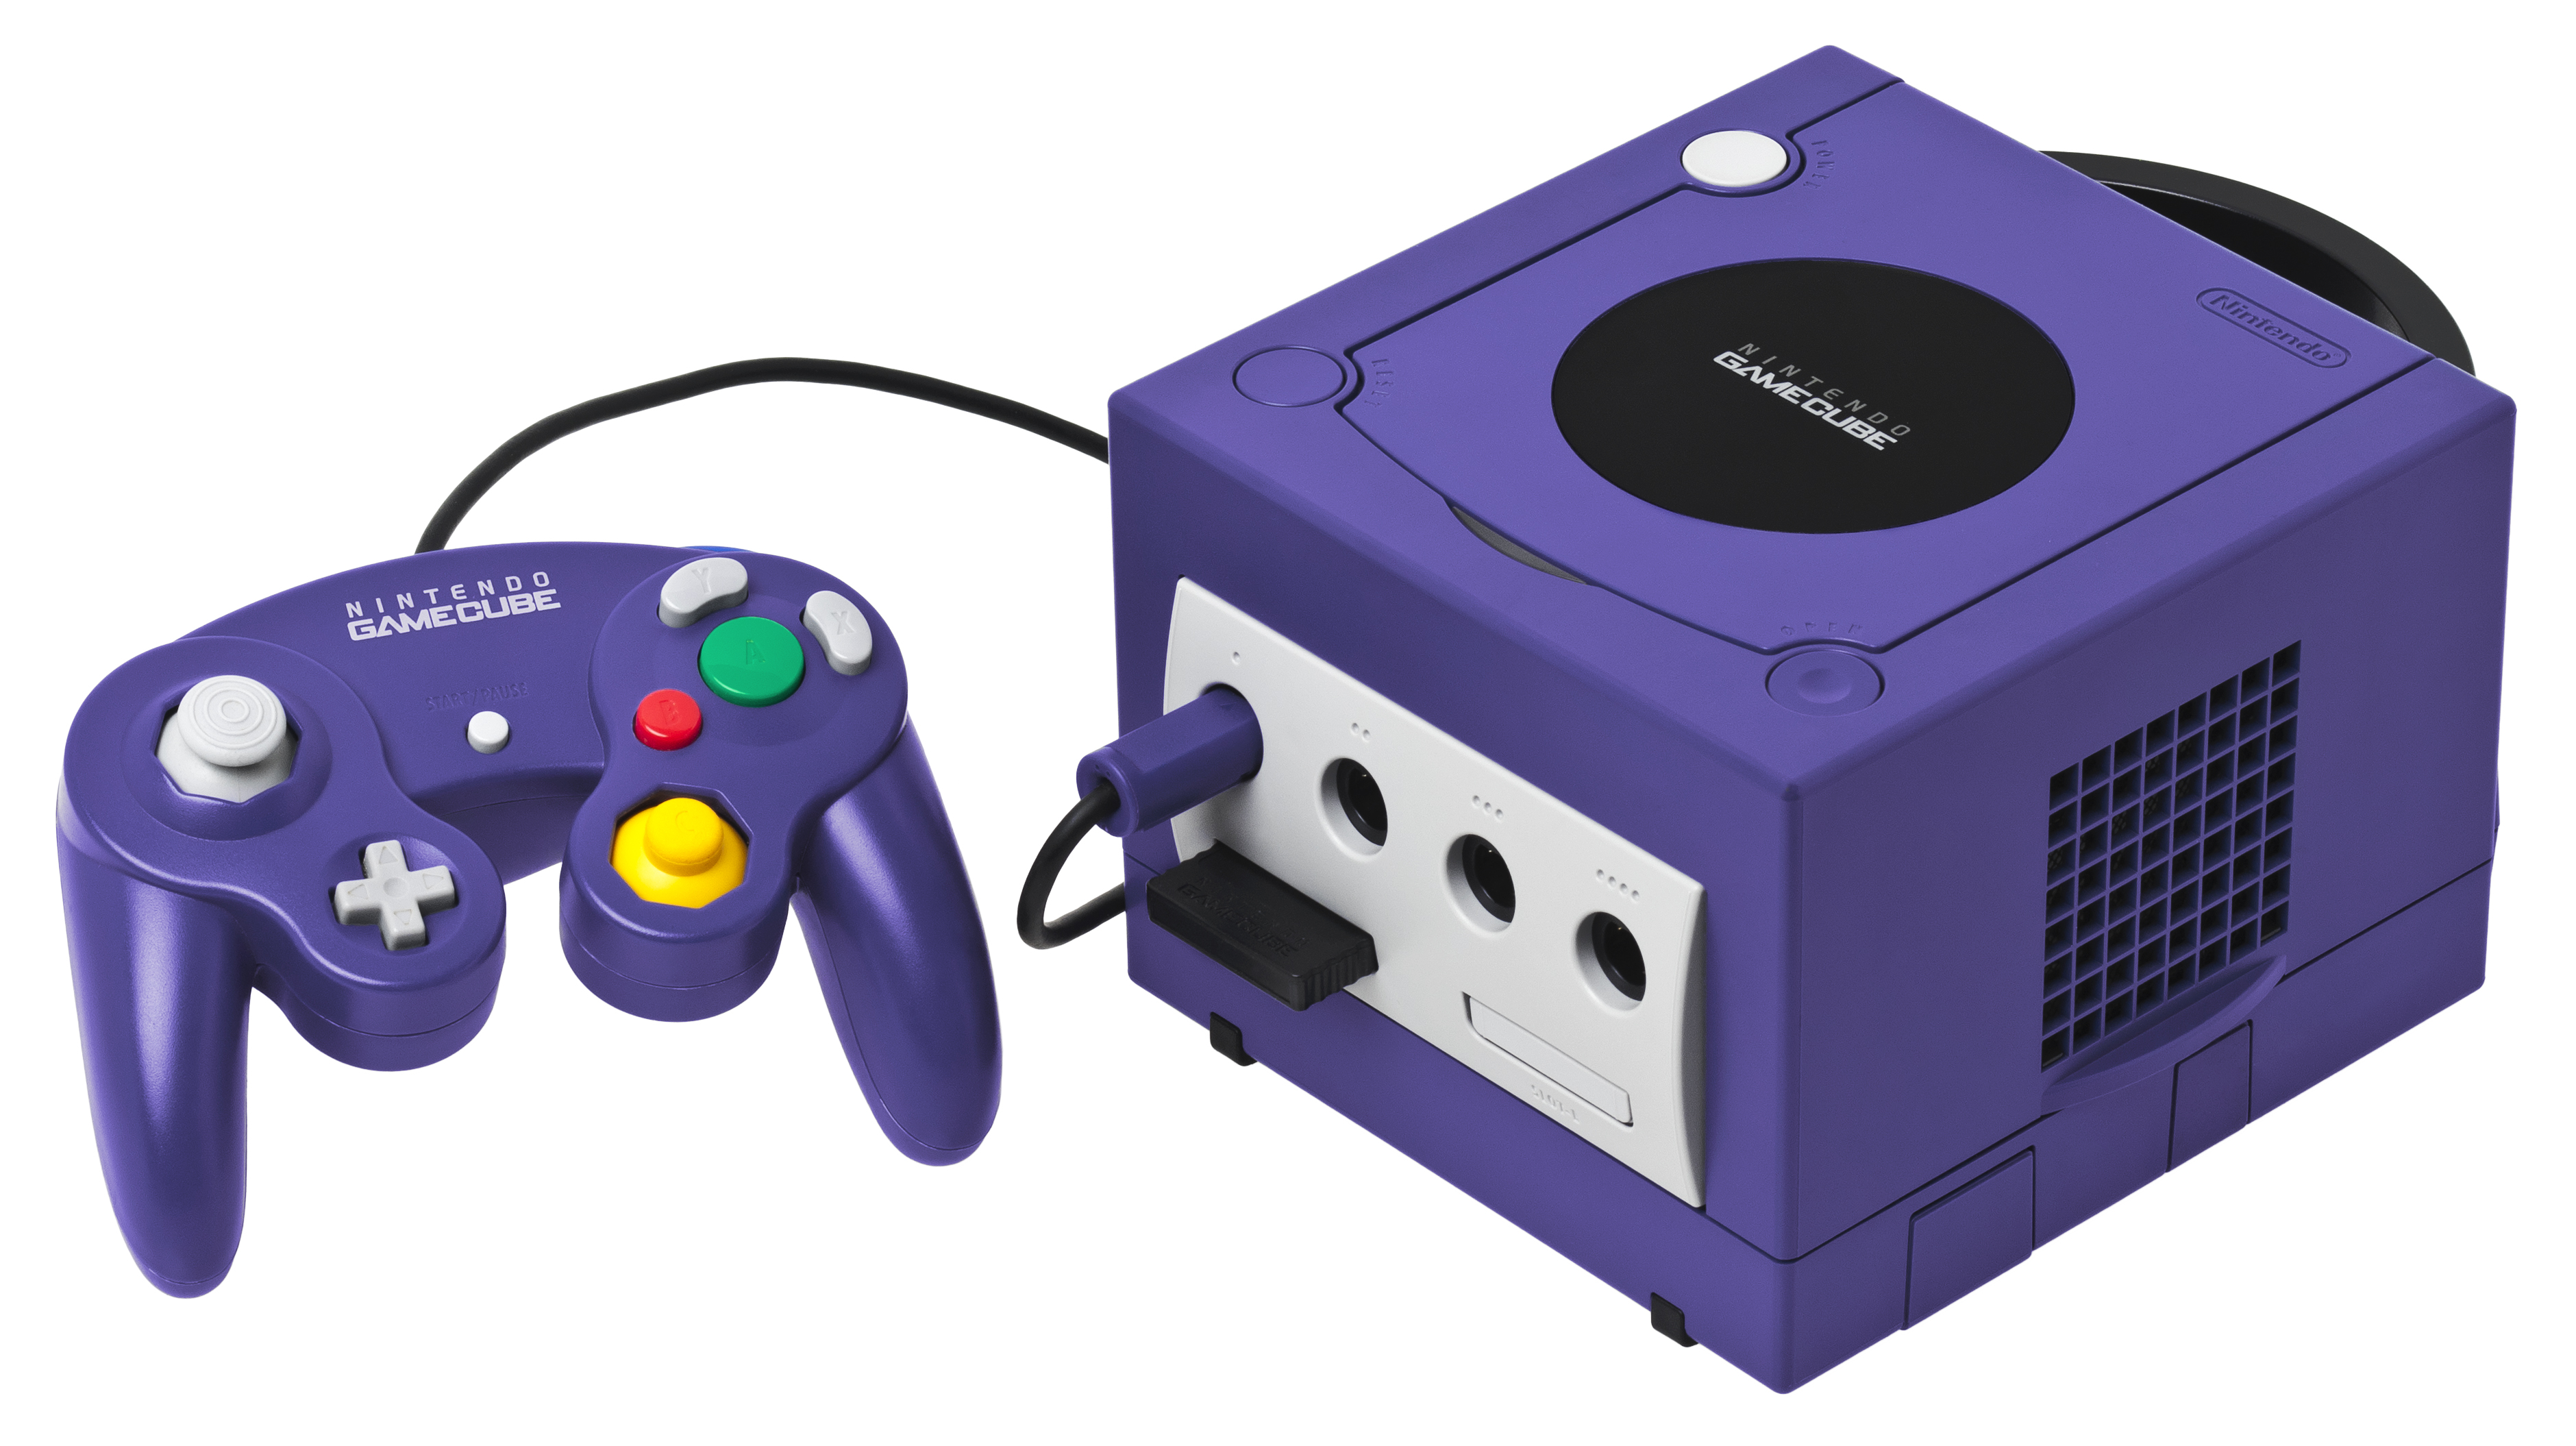 https://i1.wp.com/upload.wikimedia.org/wikipedia/commons/d/d1/GameCube-Set.jpg